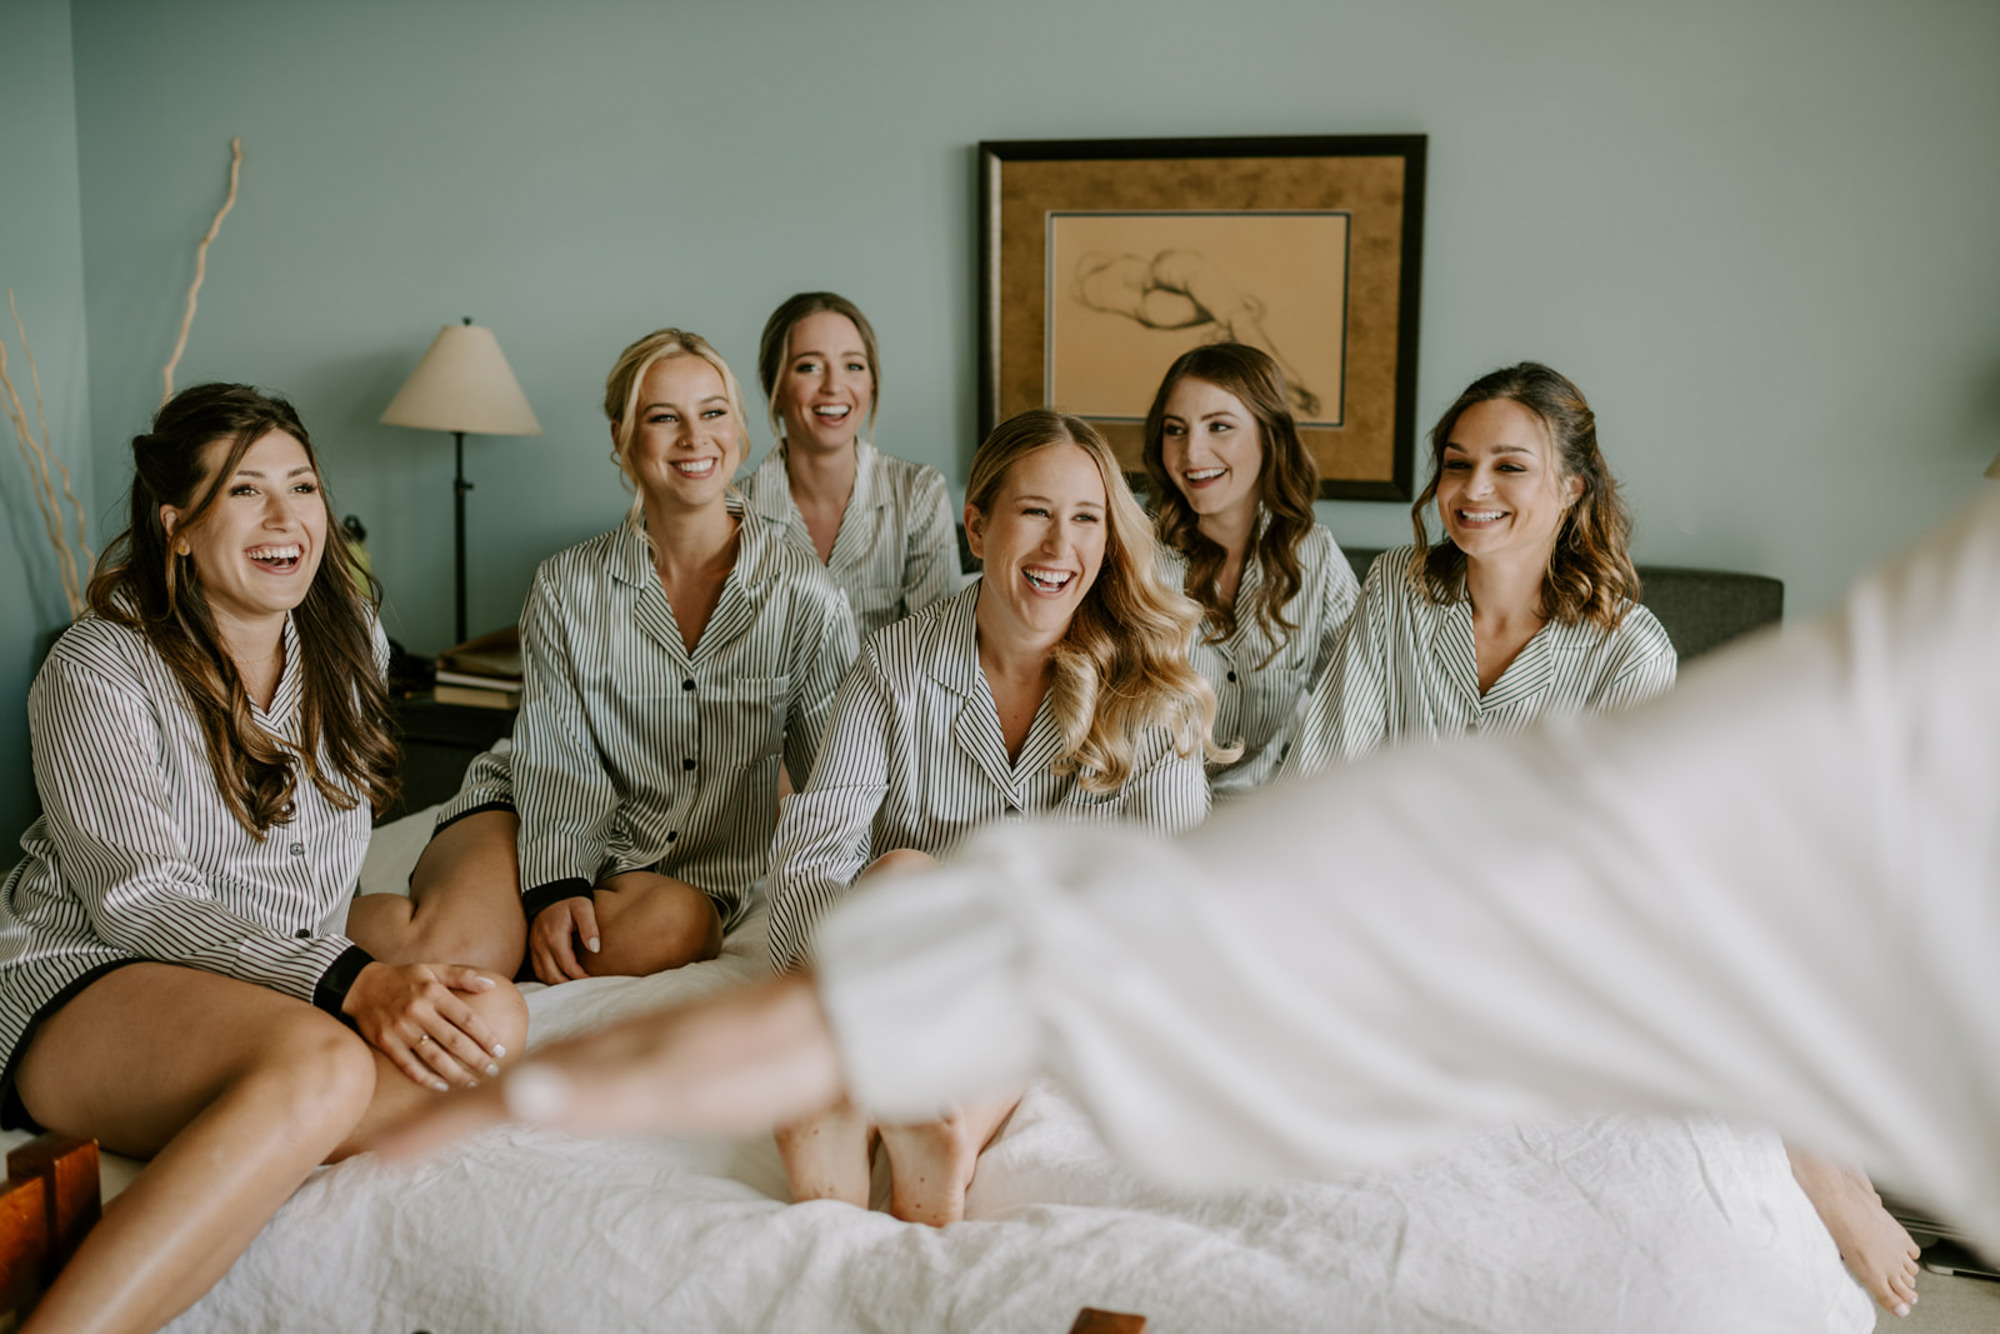 Bridesmaids laughing in matching pajamas- photo by Kristen Marie Parker